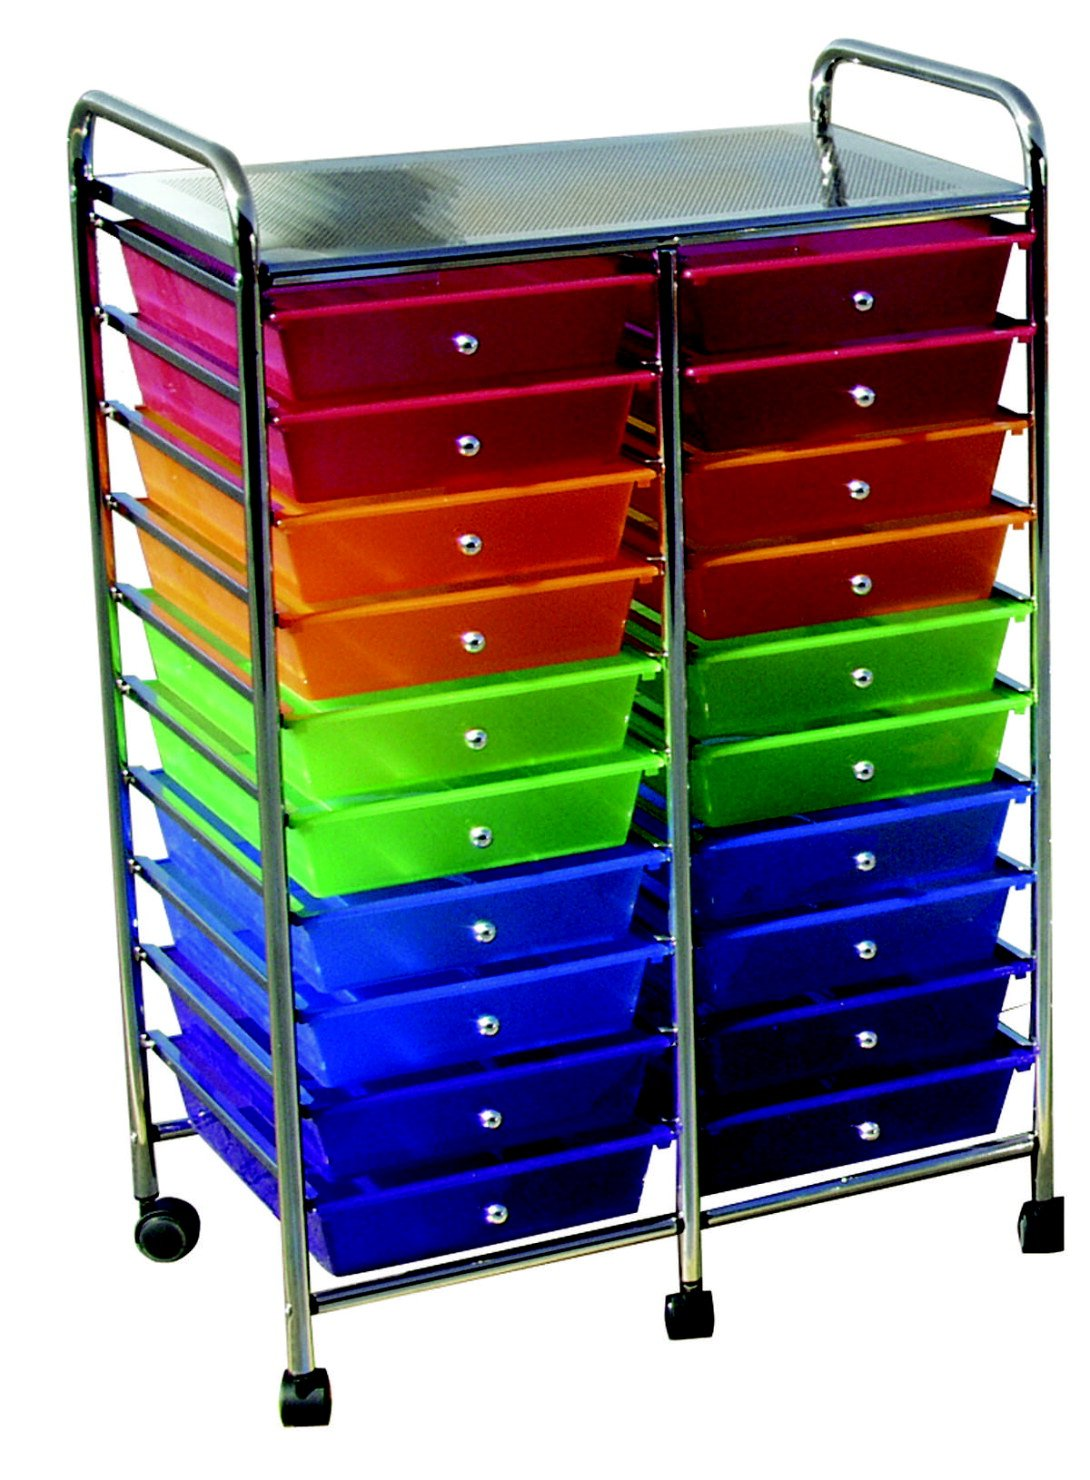 School Smart 406832 Mobile Organizer, 20 Drawers, 39'' x 21-3/4'' x 14'', Multi-Color